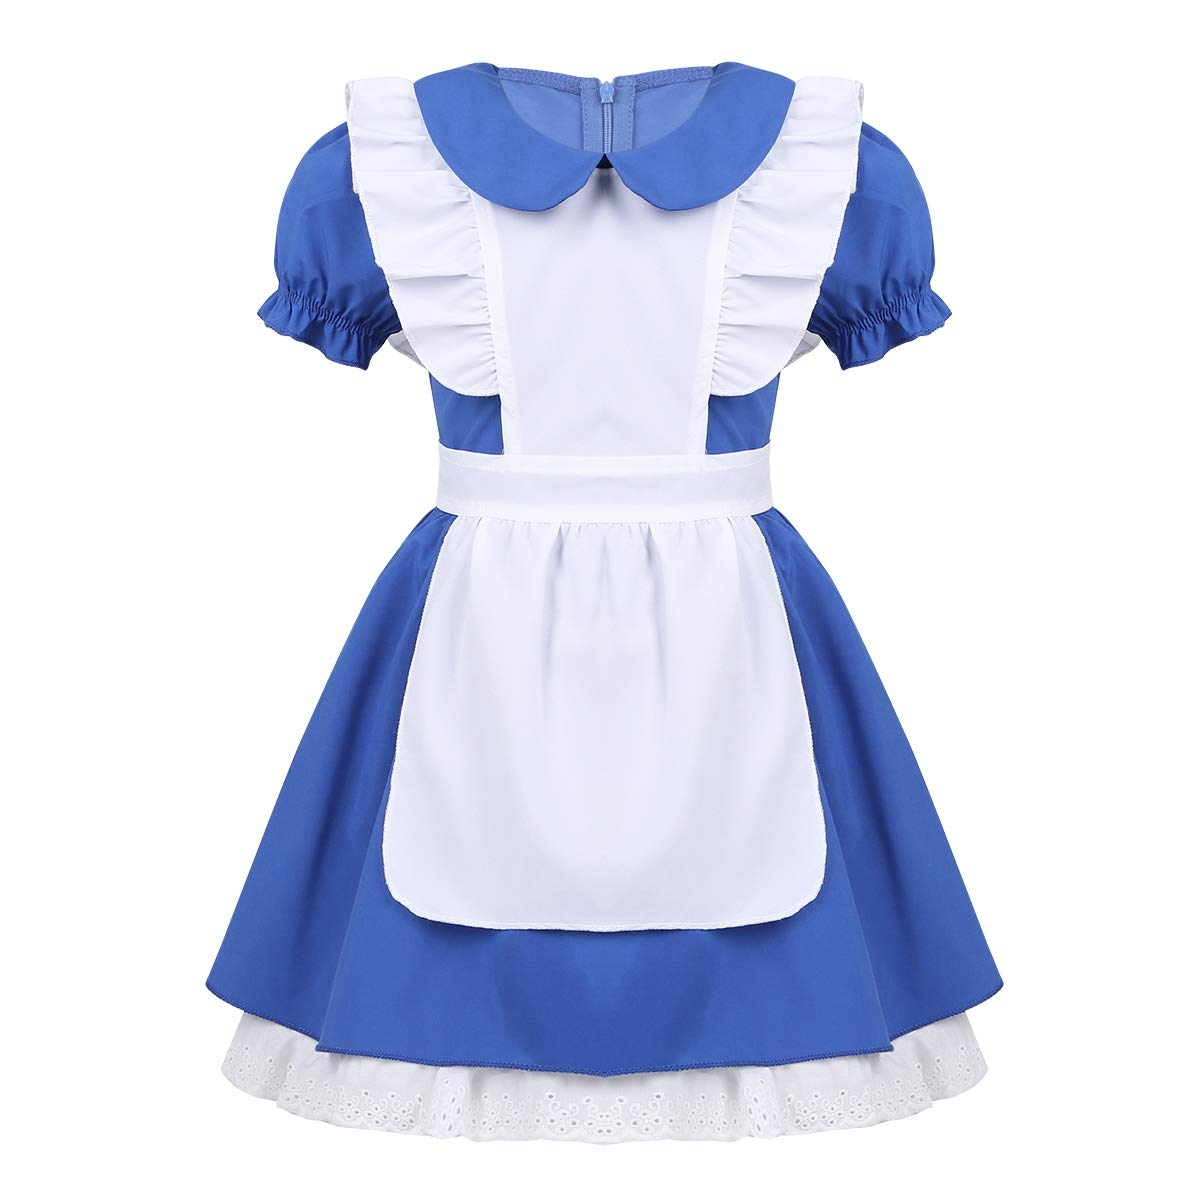 YiZYiF Princess Alice Girls Play Dress Up Toddler Adventure Cotton Apron Halloween Costumes Blue 18-24Months